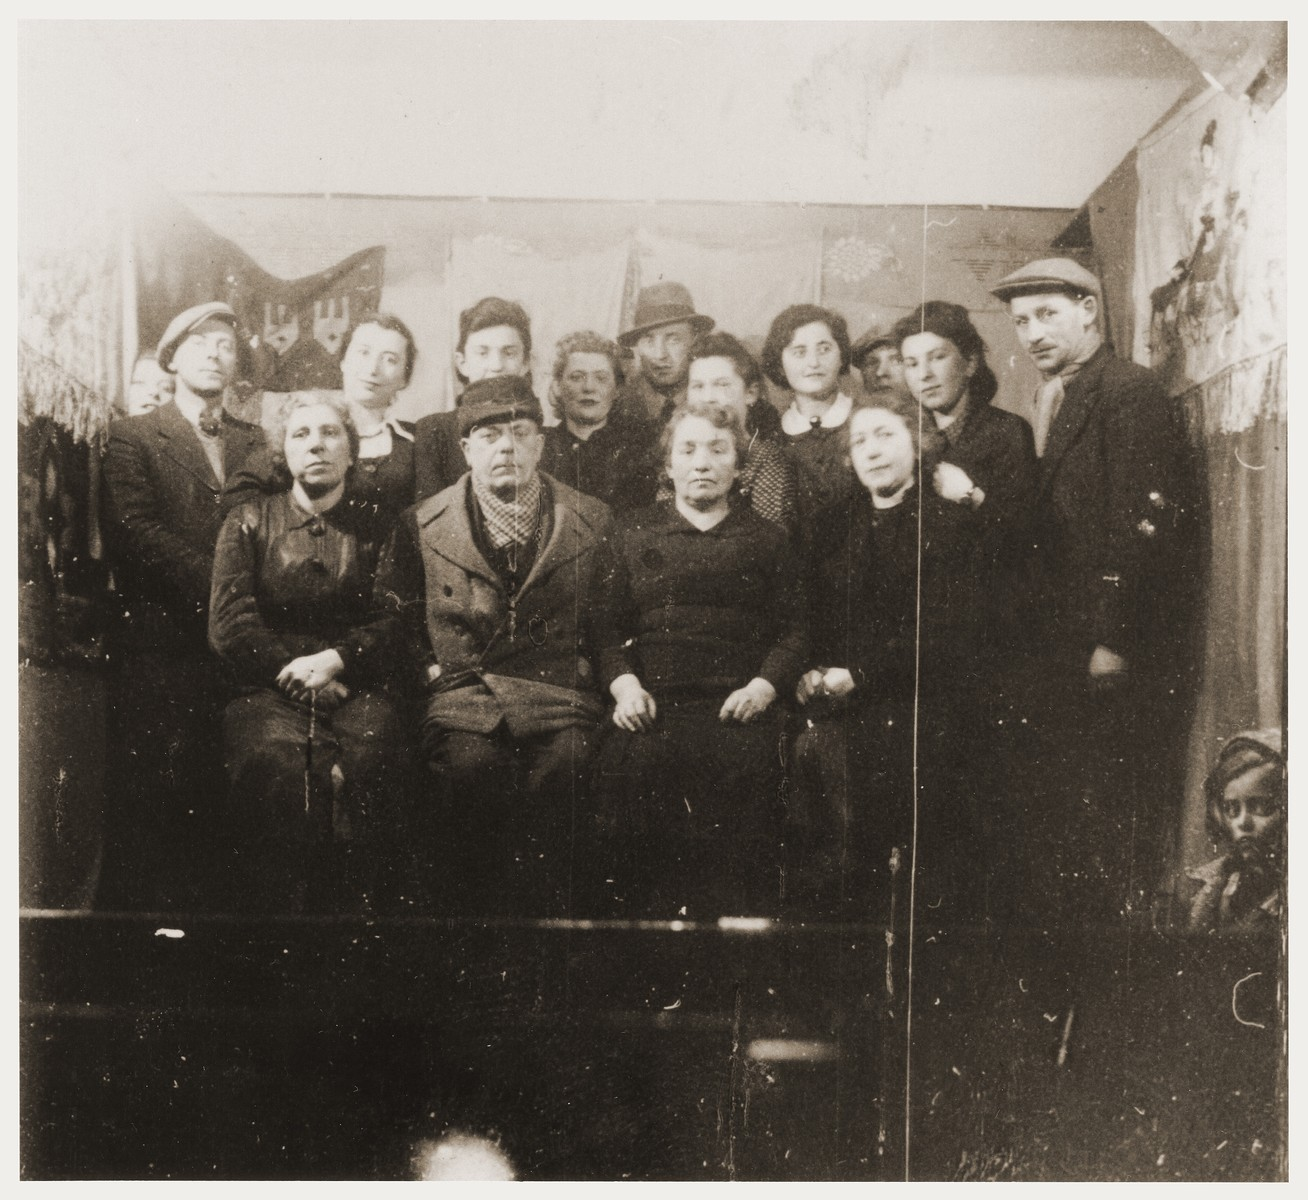 Group portrait of Jewish men and women in front of a stage set at a Purim celebration in the Zabno ghetto.